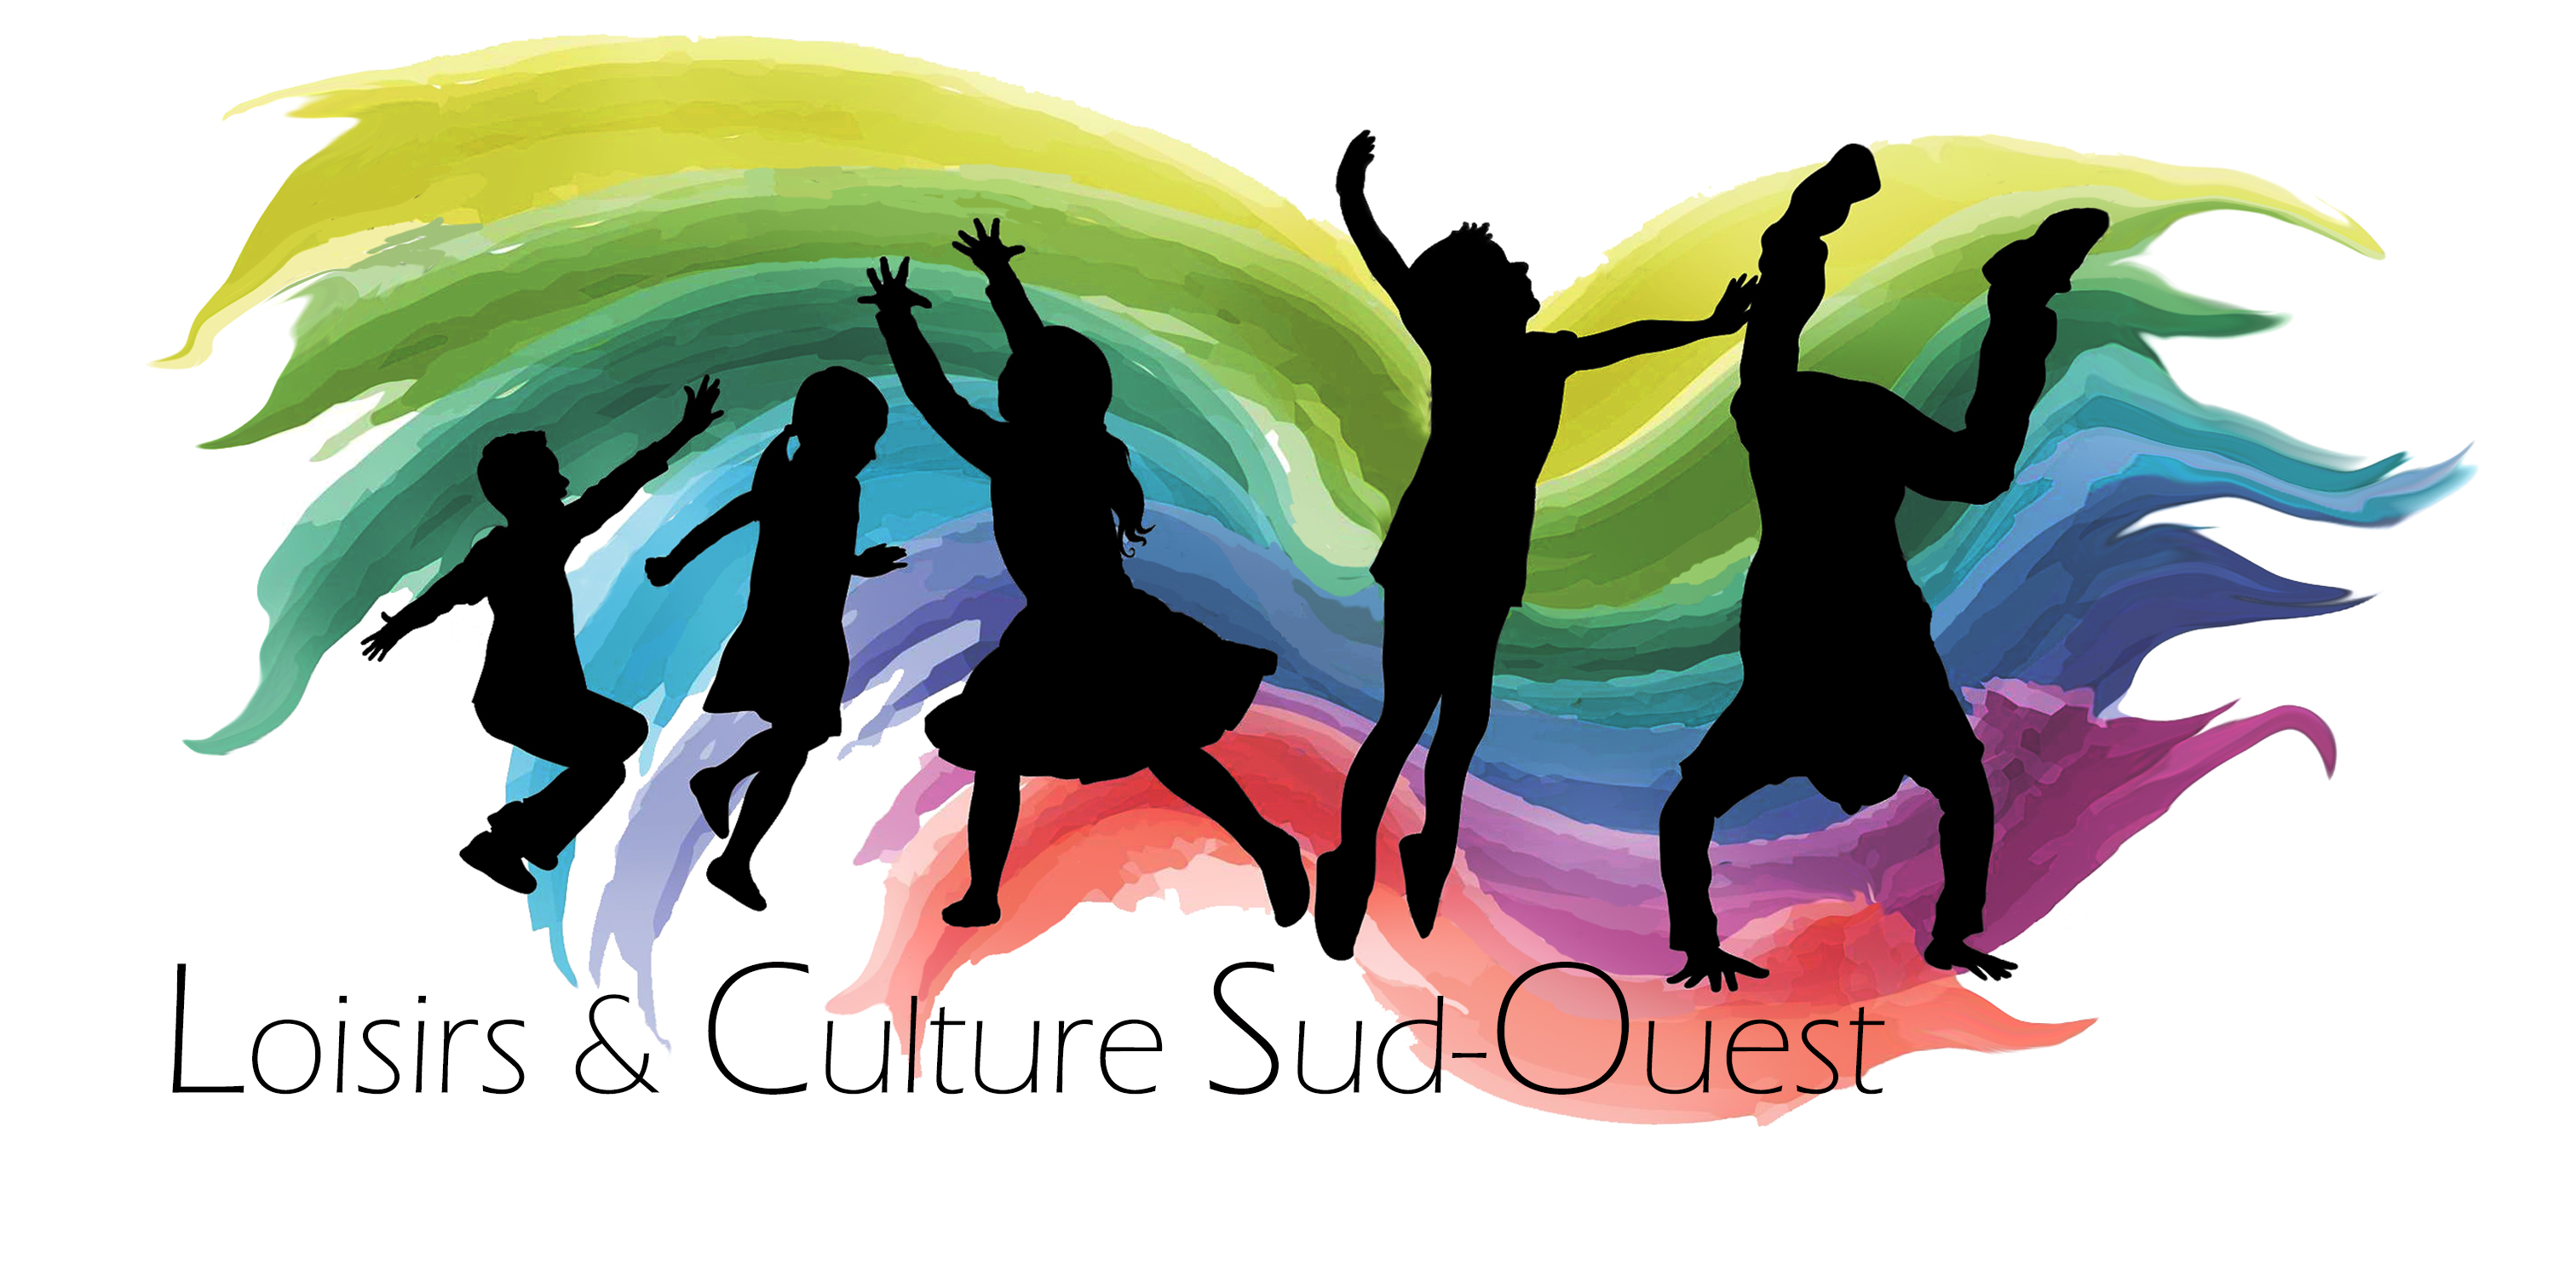 Loisirs & Culture Sud-Ouest